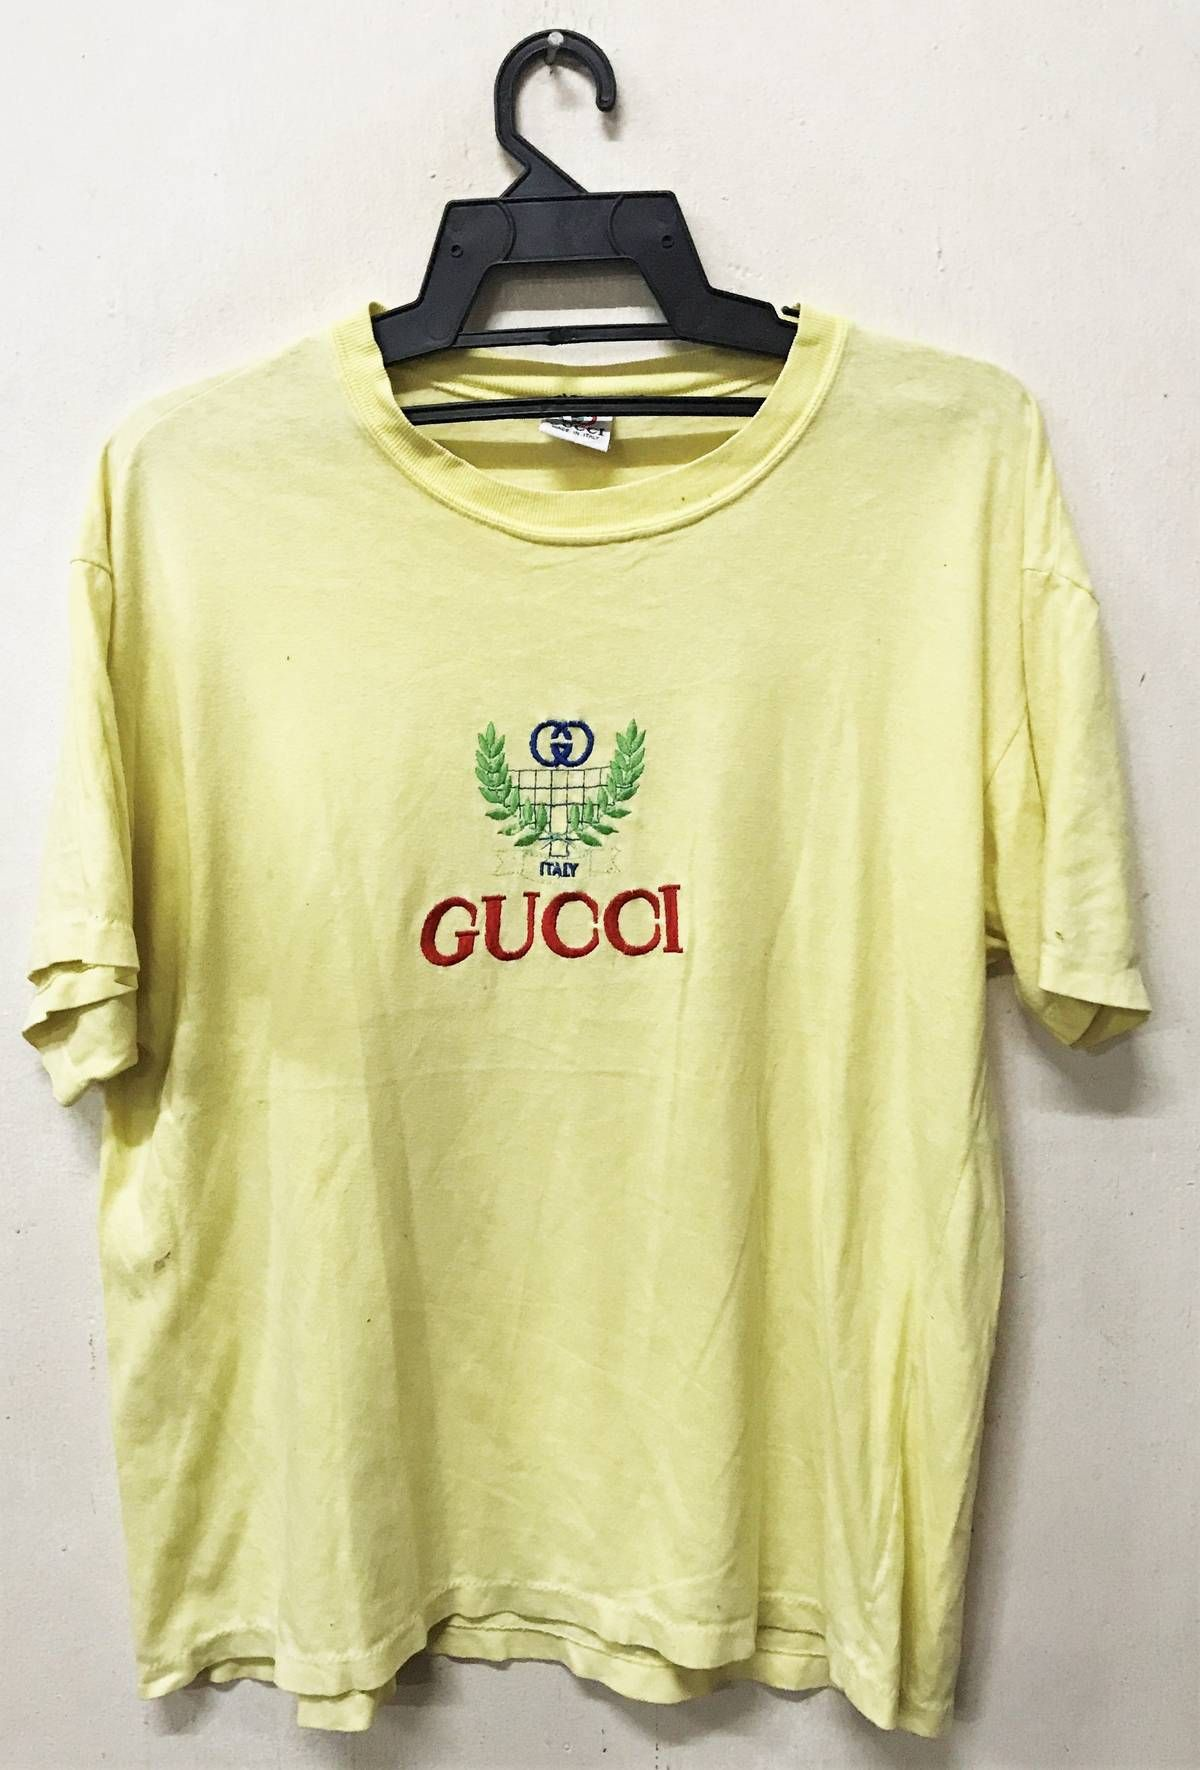 077c1c19ca8ef Gucci VINTAGE GUCCI EMBROIDERY LOGO T-SHIRT Size m - Short Sleeve T-Shirts